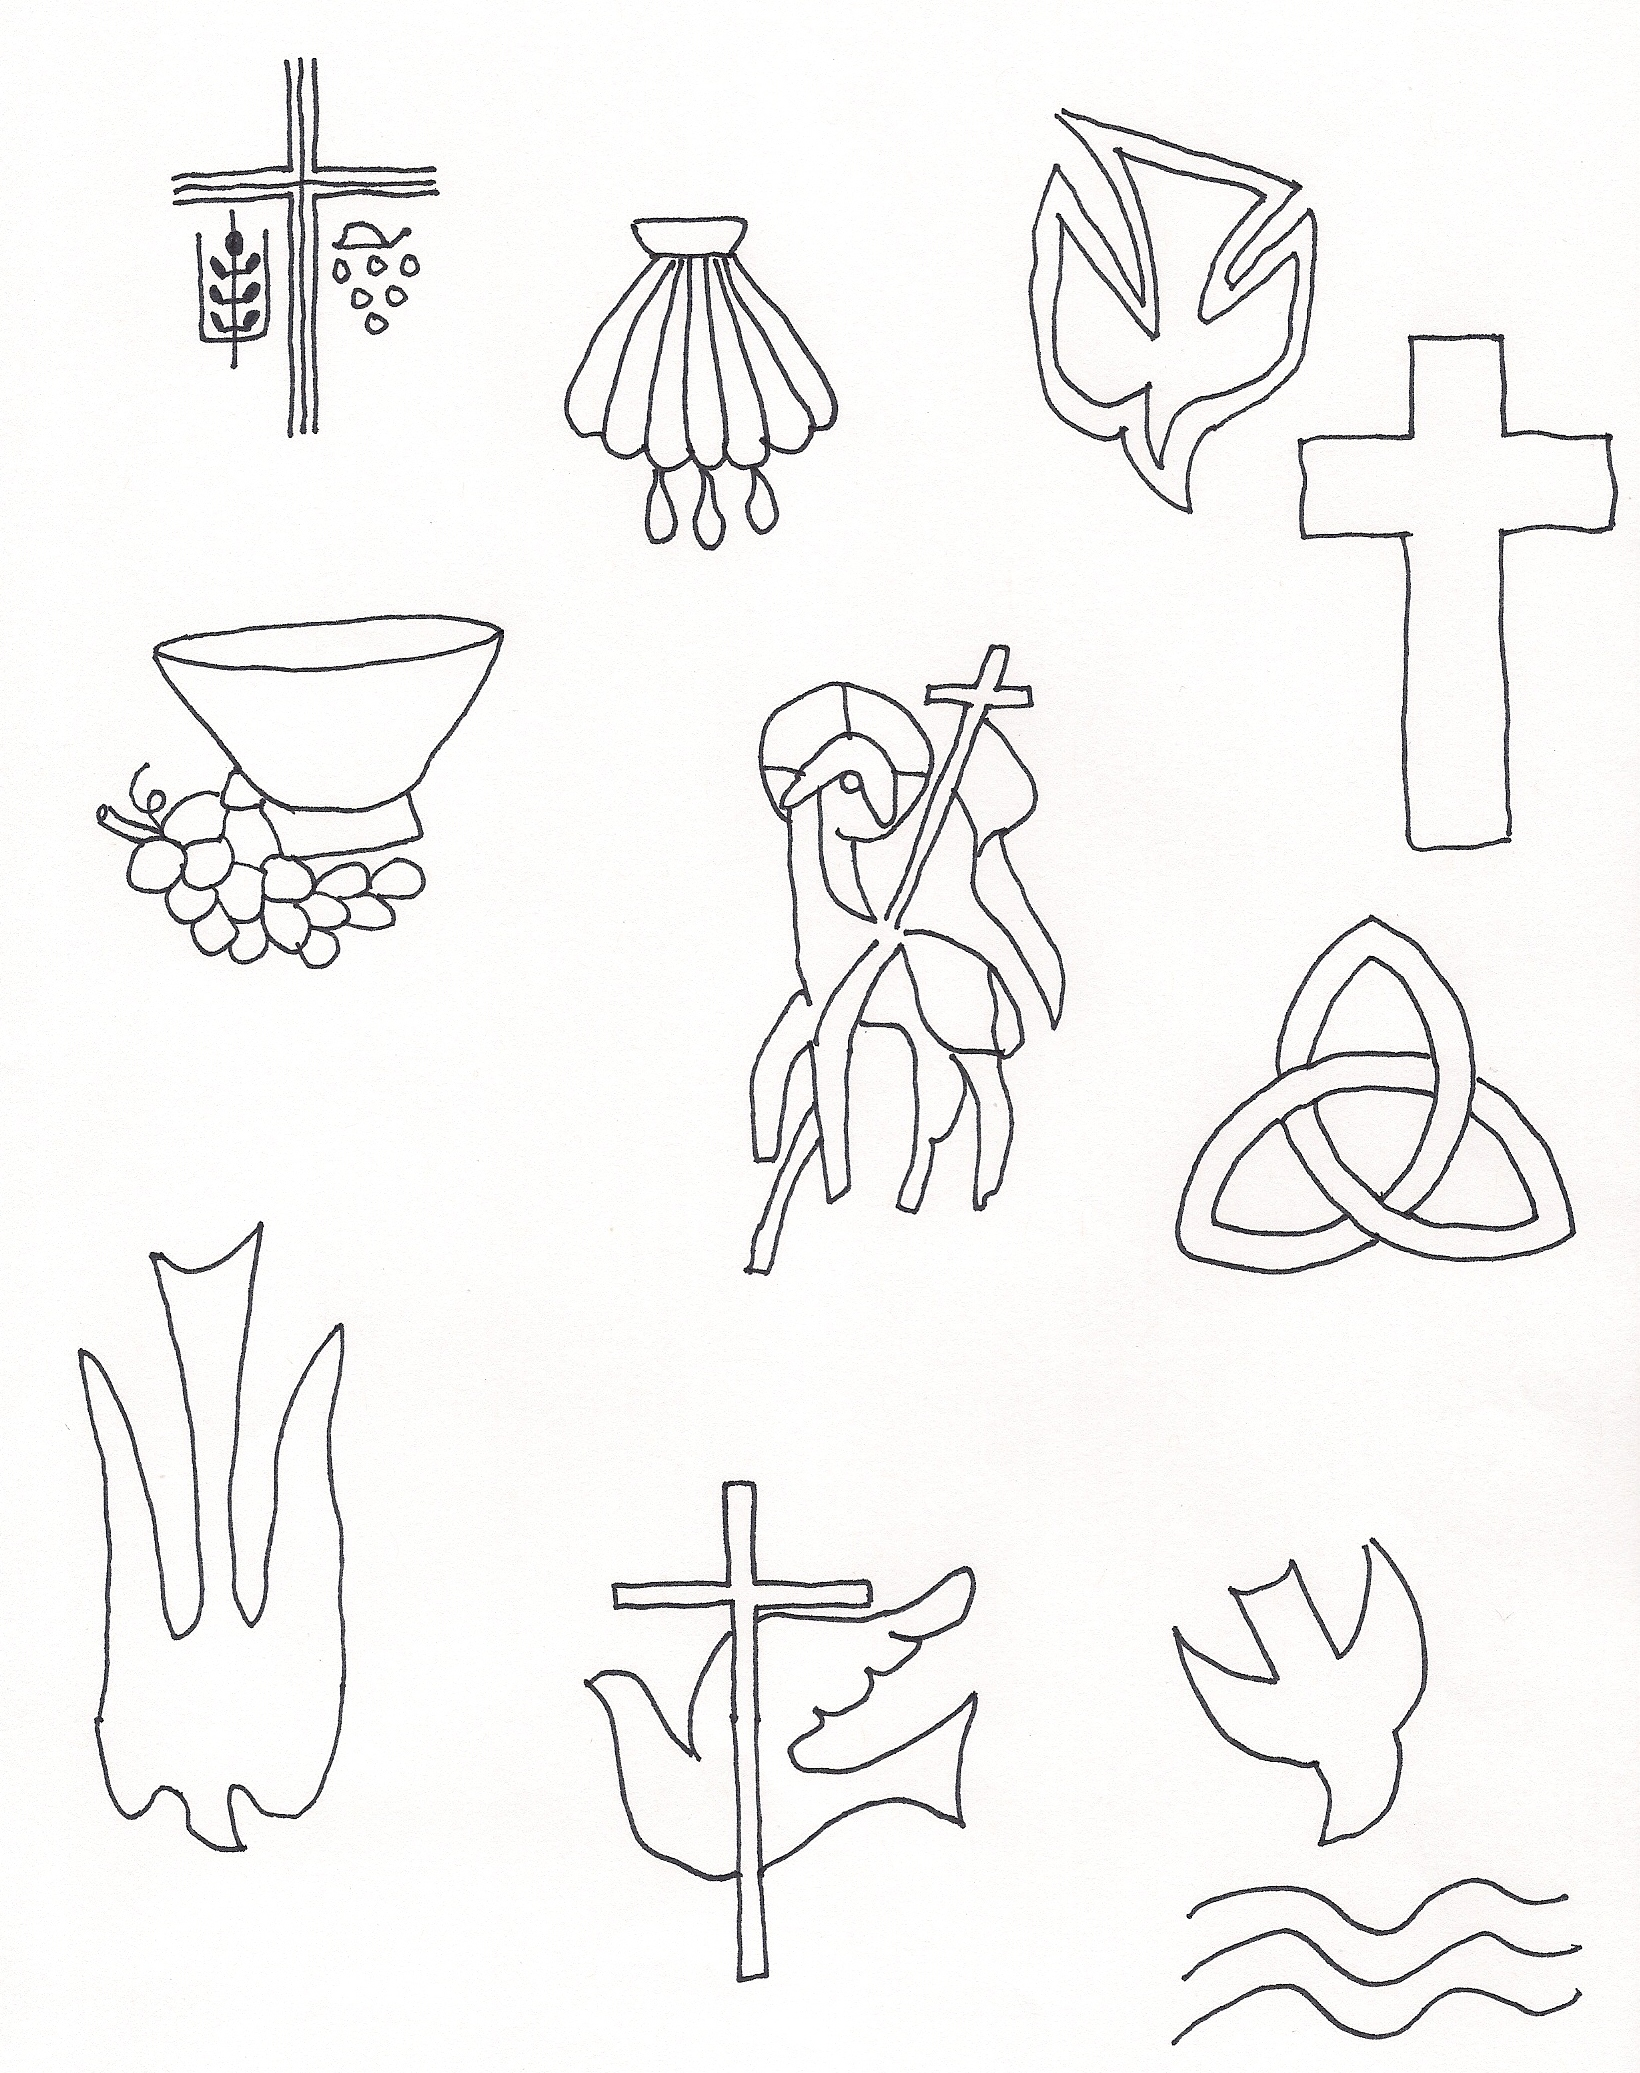 baptism shell coloring pages - photo#8